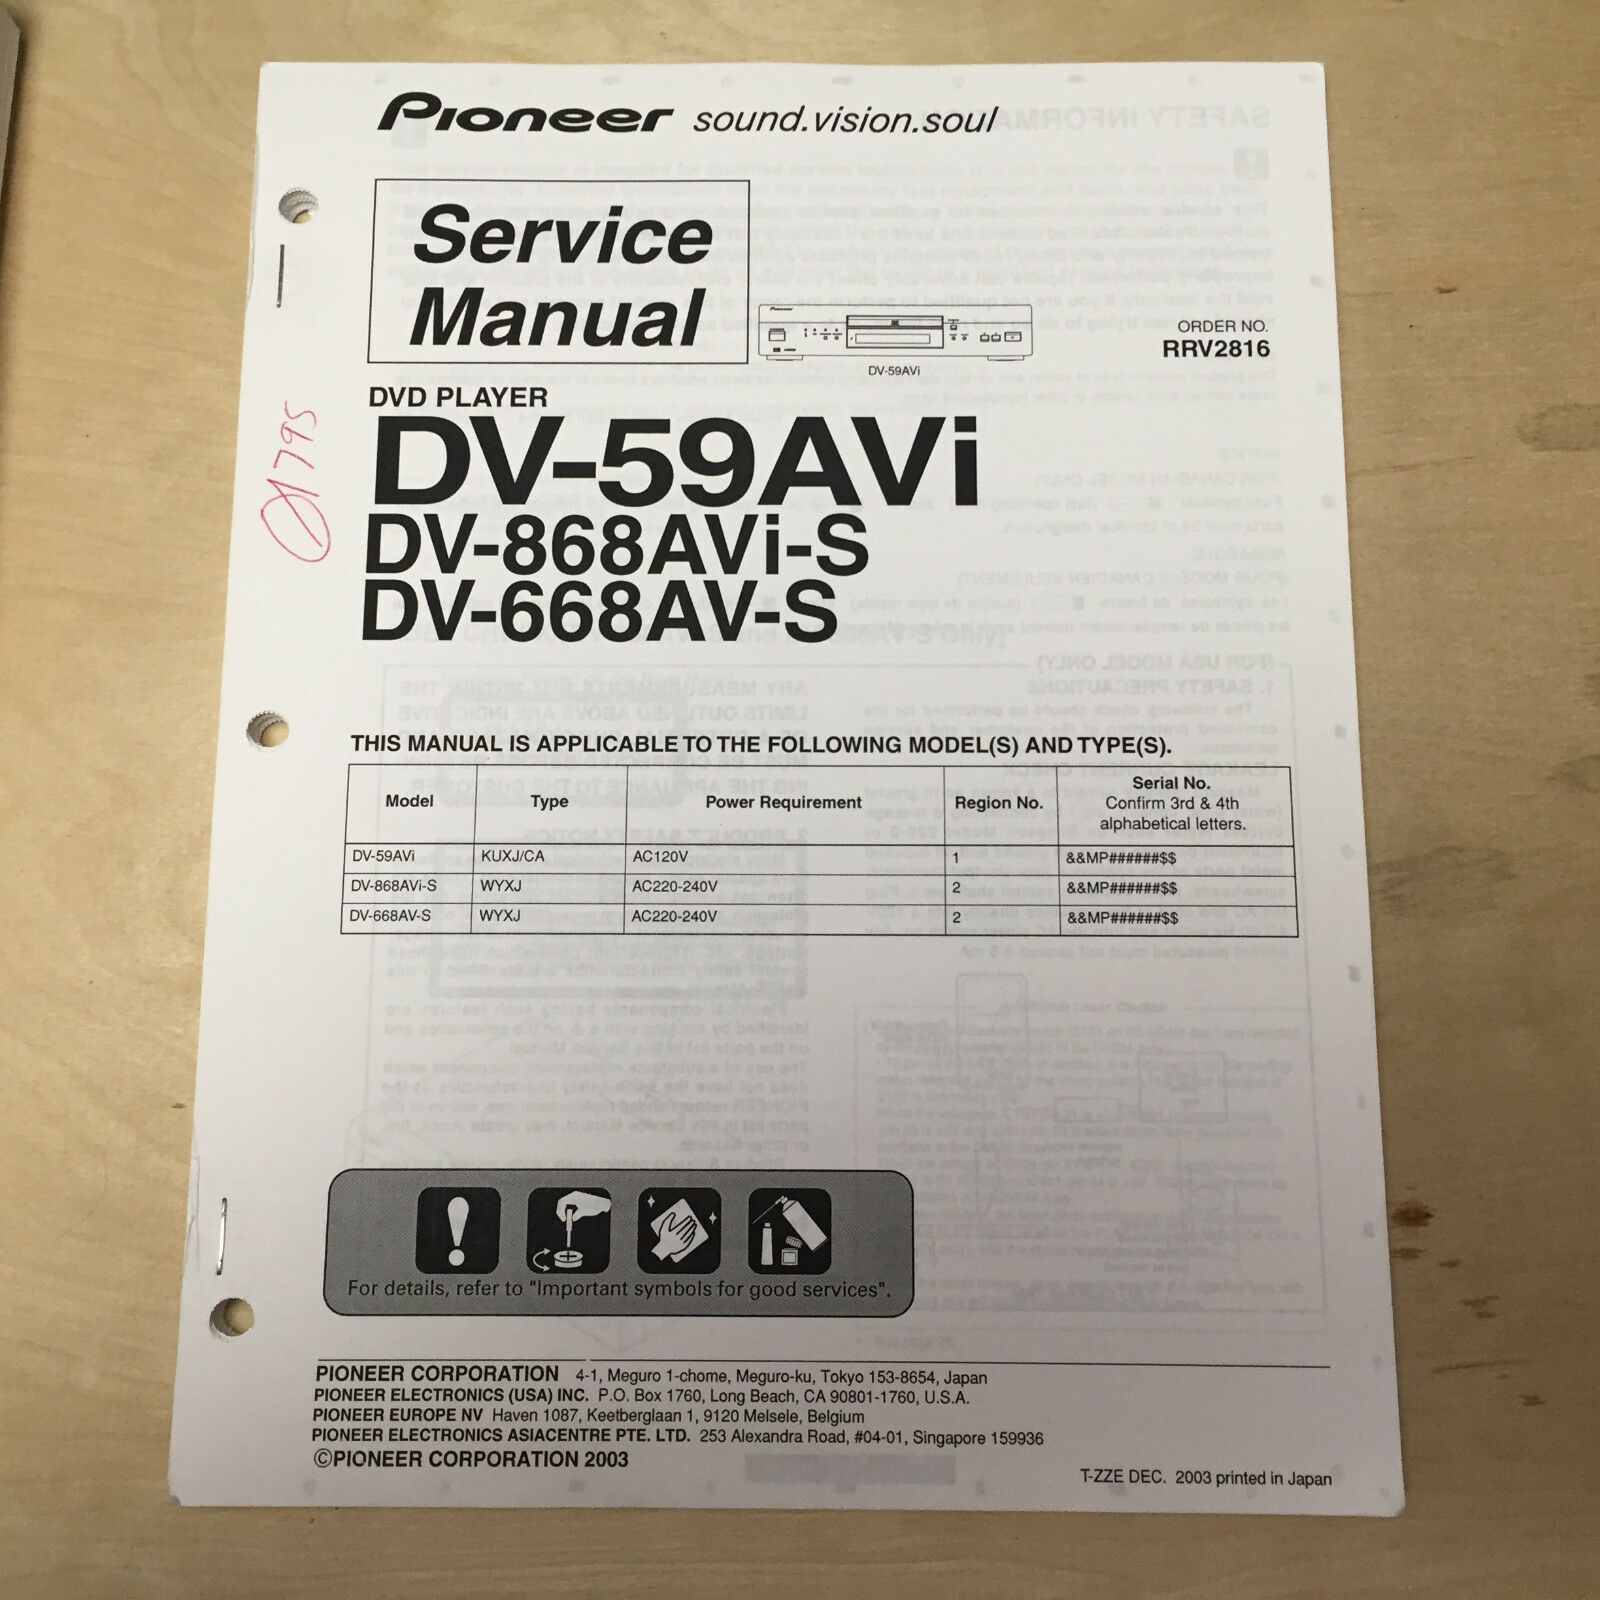 Pioneer Service Manual For The Dv 59avi 868avi S 668av Dvd Player Avh P5700dvd Installation 1 Of 1only Available